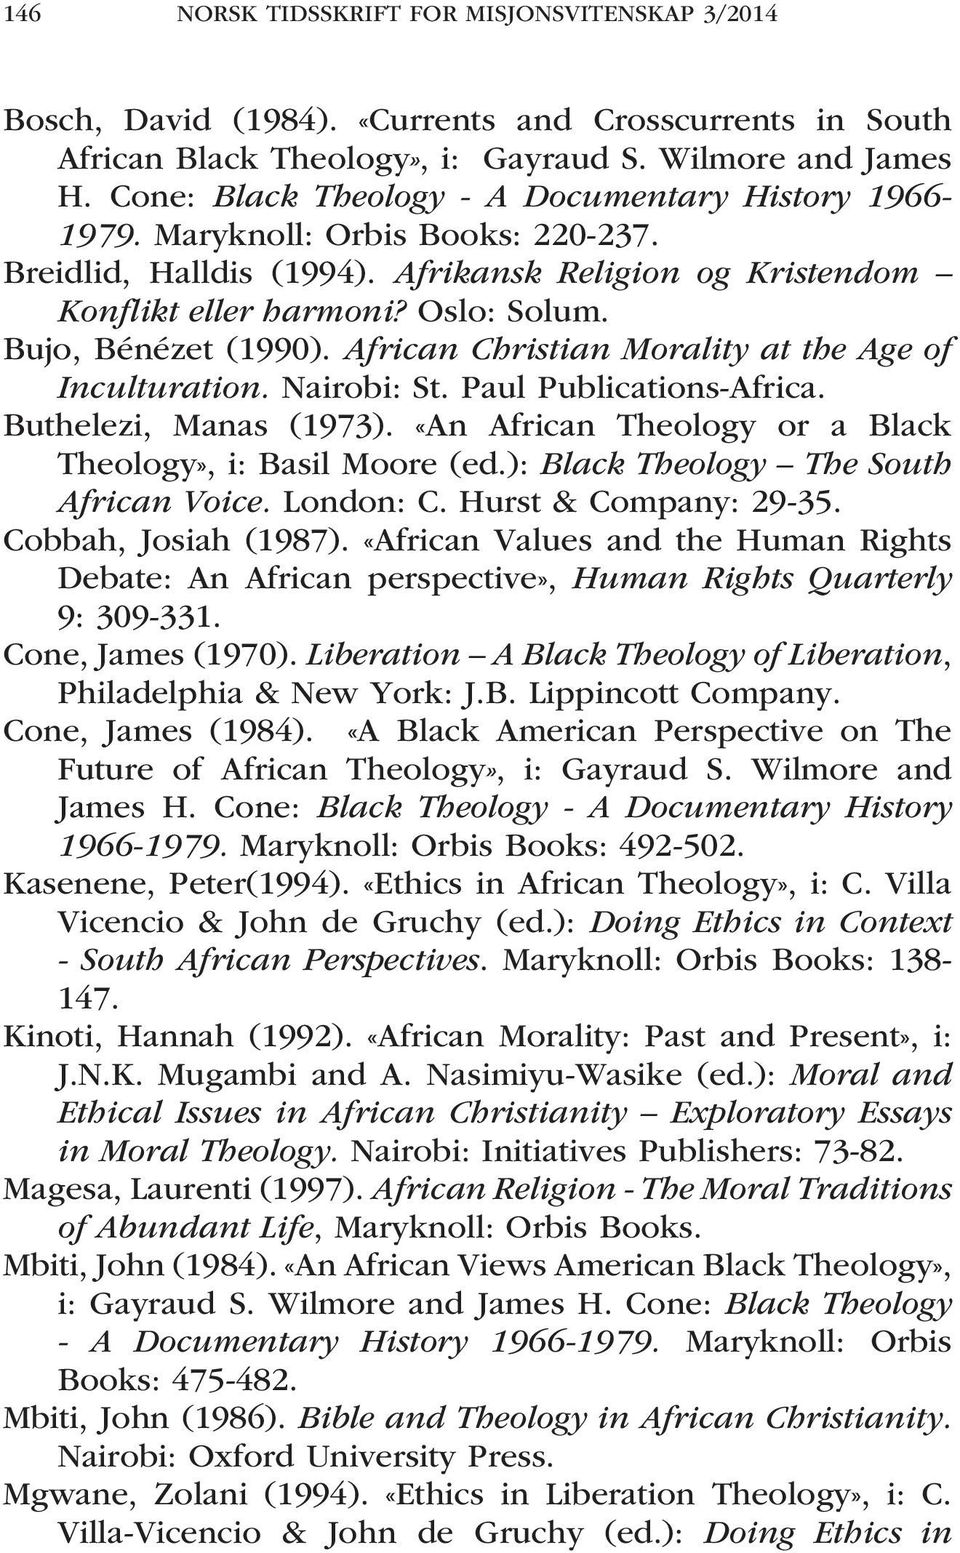 Bujo, Bénézet (1990). African Christian Morality at the Age of Inculturation. Nairobi: St. Paul Publications-Africa. Buthelezi, Manas (1973).